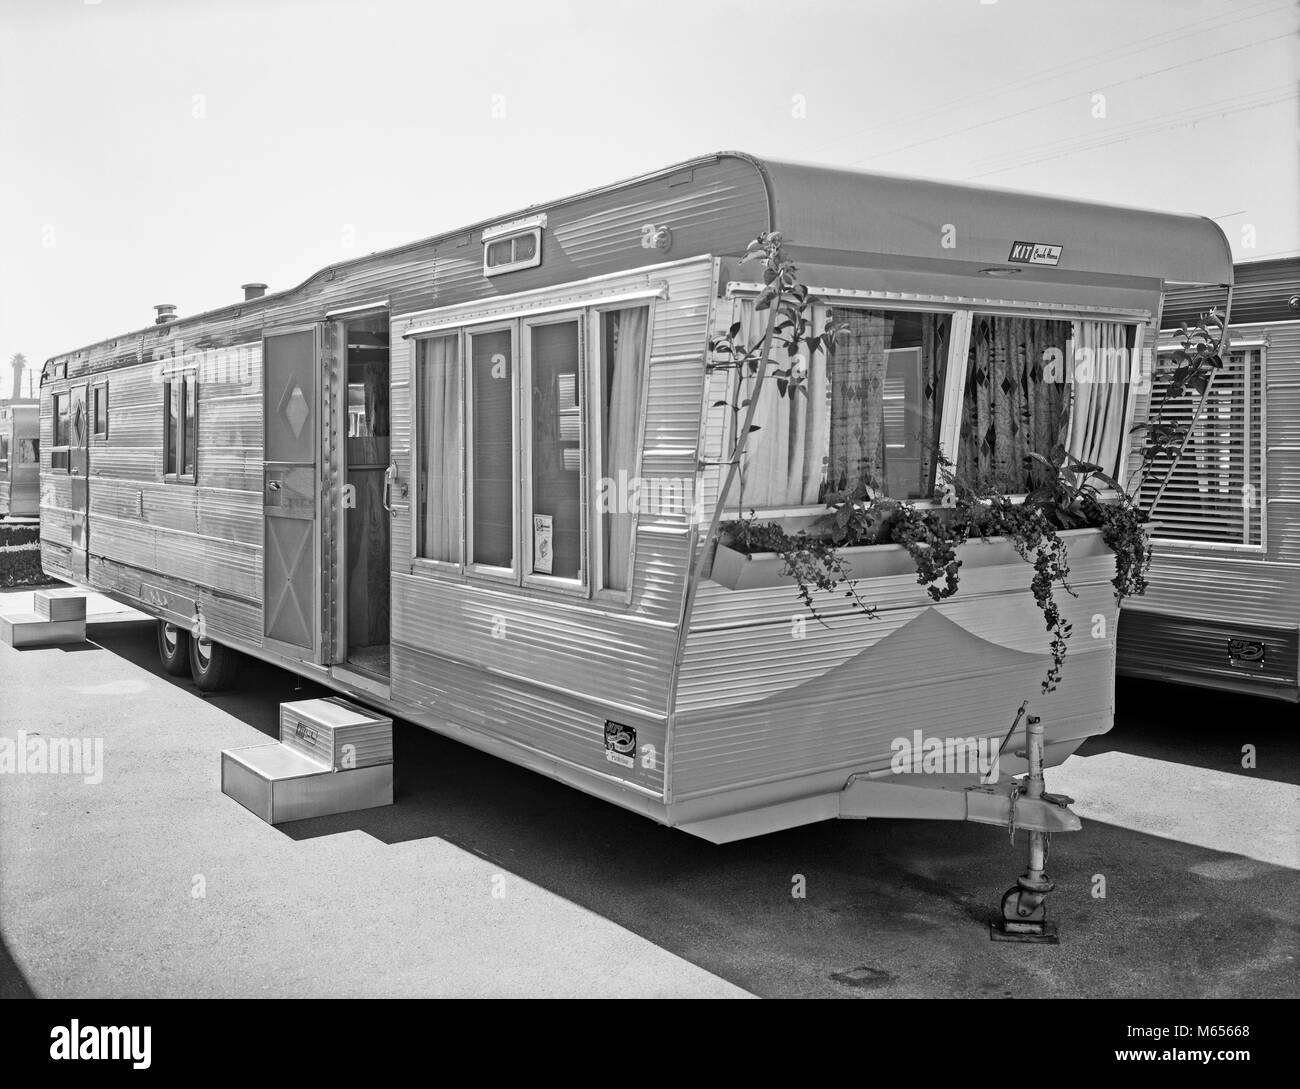 1950s MOBILE HOME IN TRAILER PARK - by007177 CAM001 HARS OLD FASHIONED - Stock Image